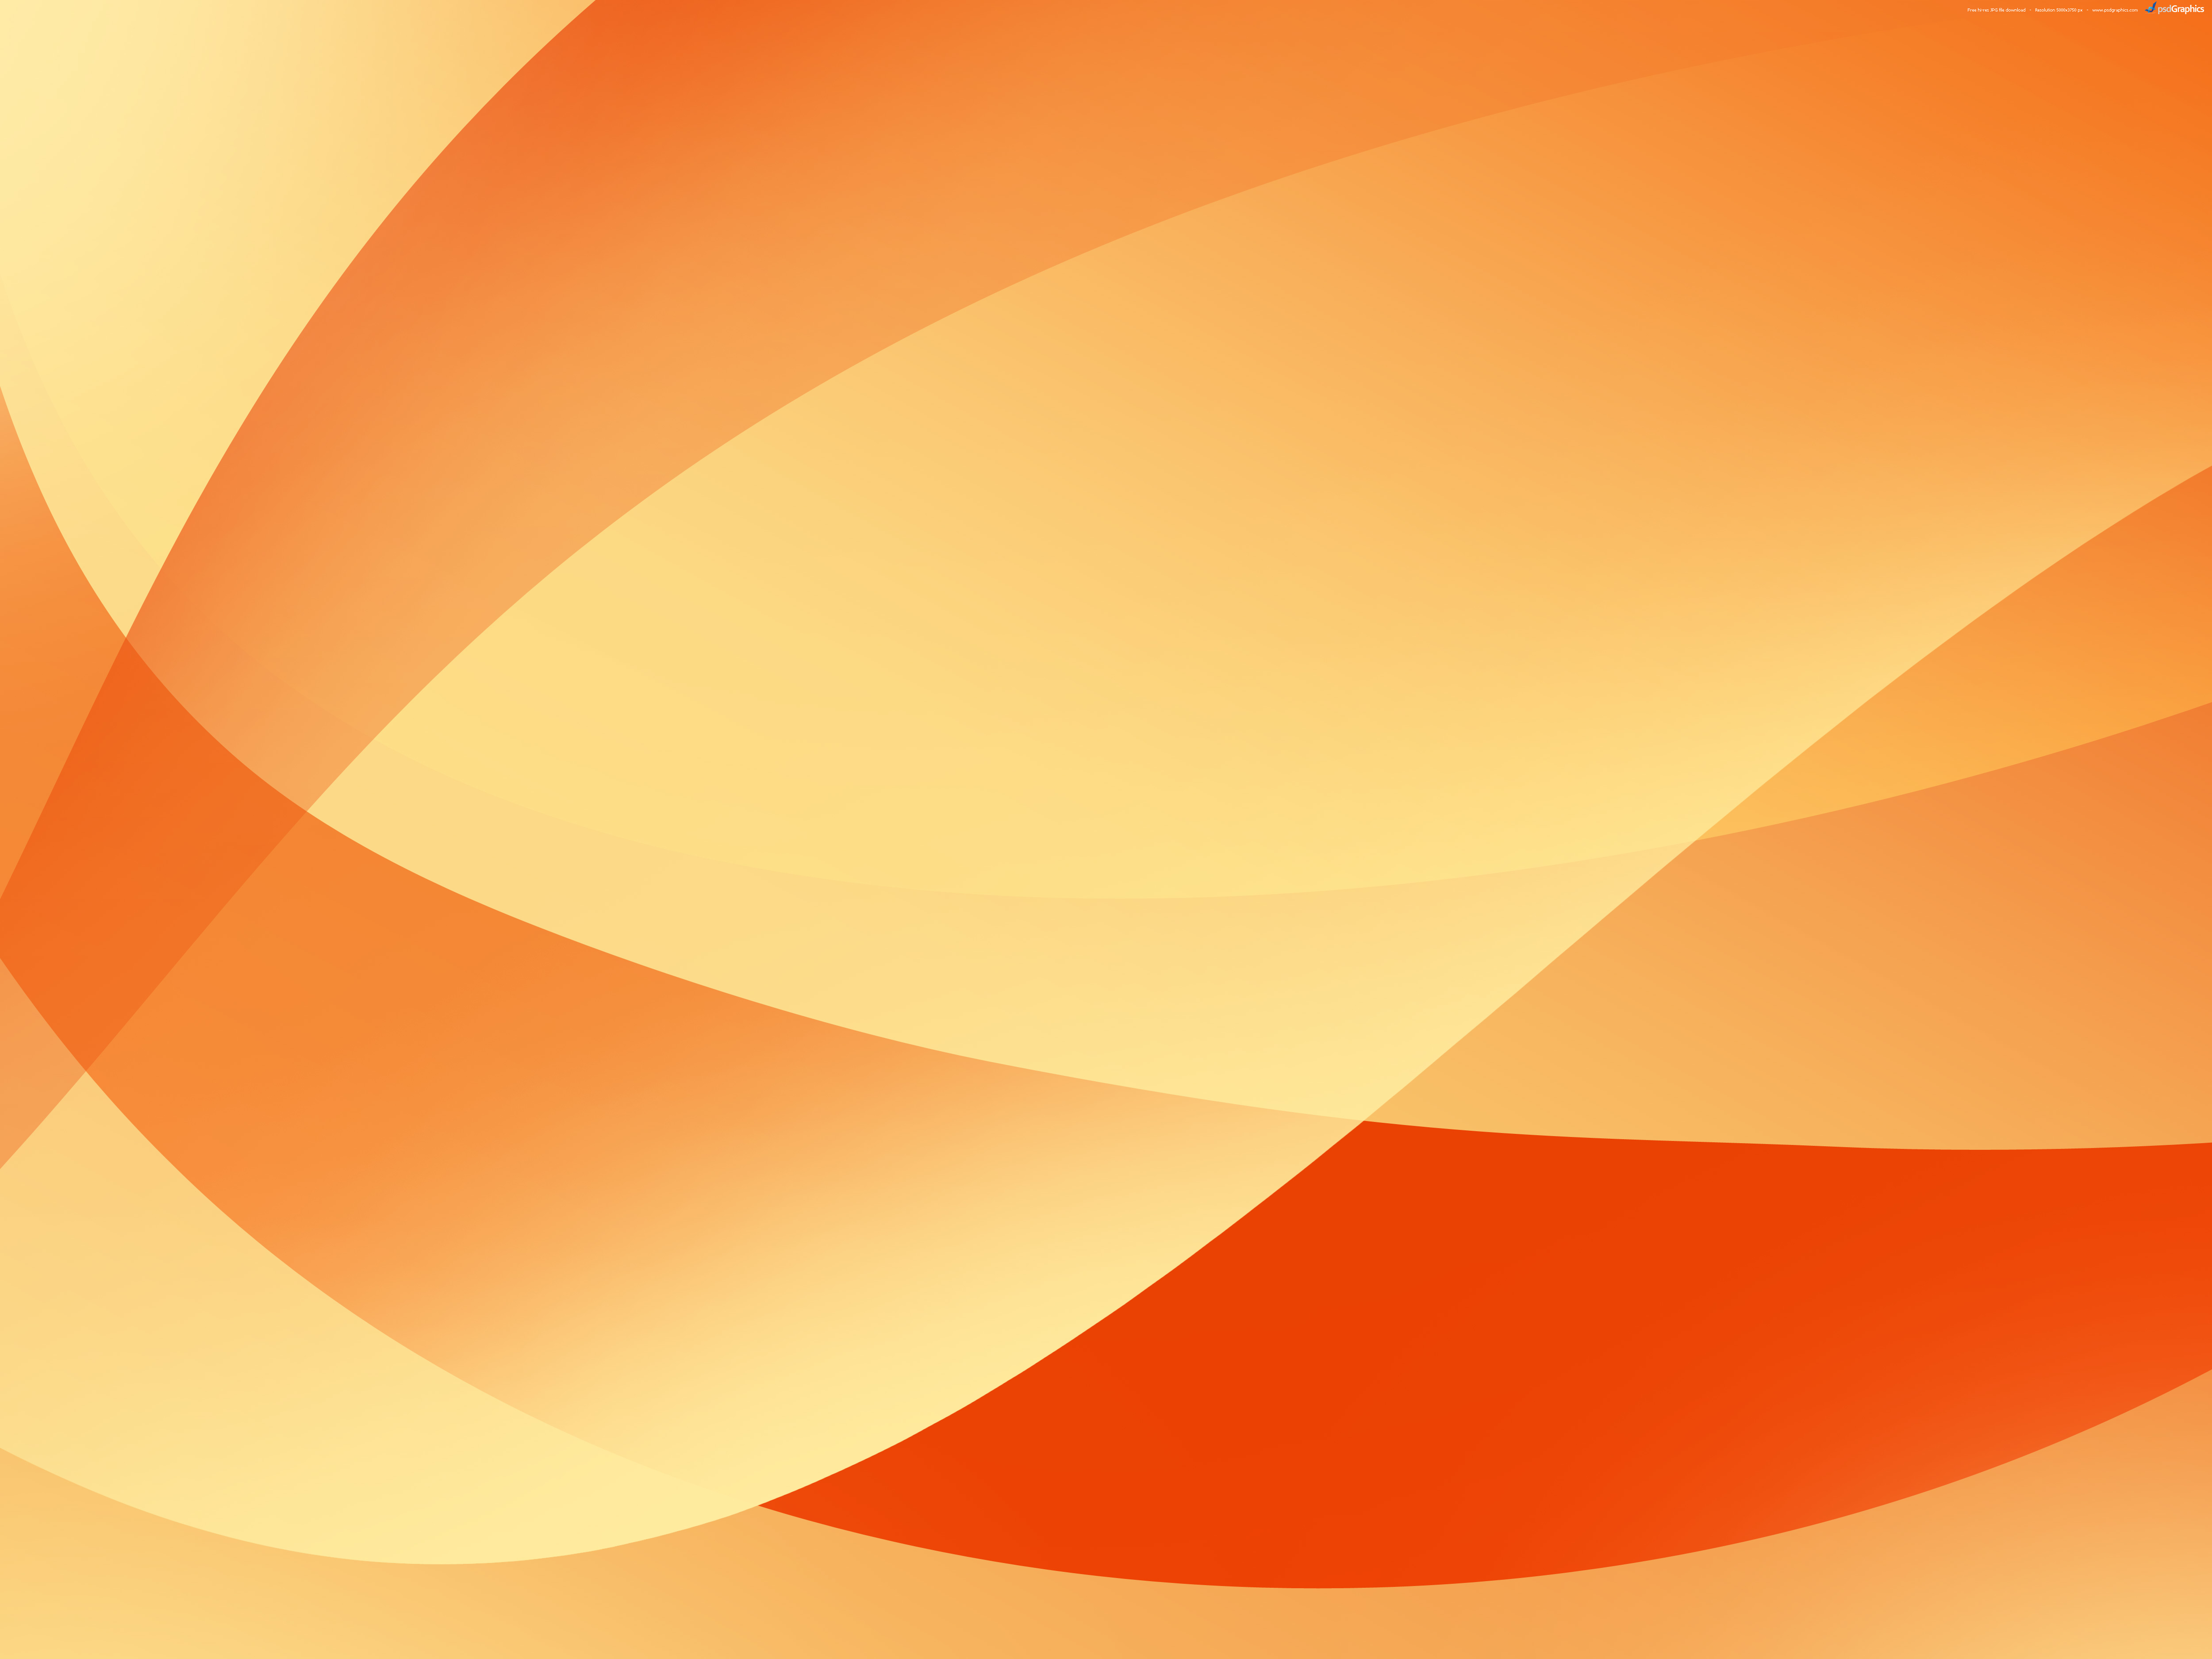 Abstract orange backgrounds | PSDGraphics